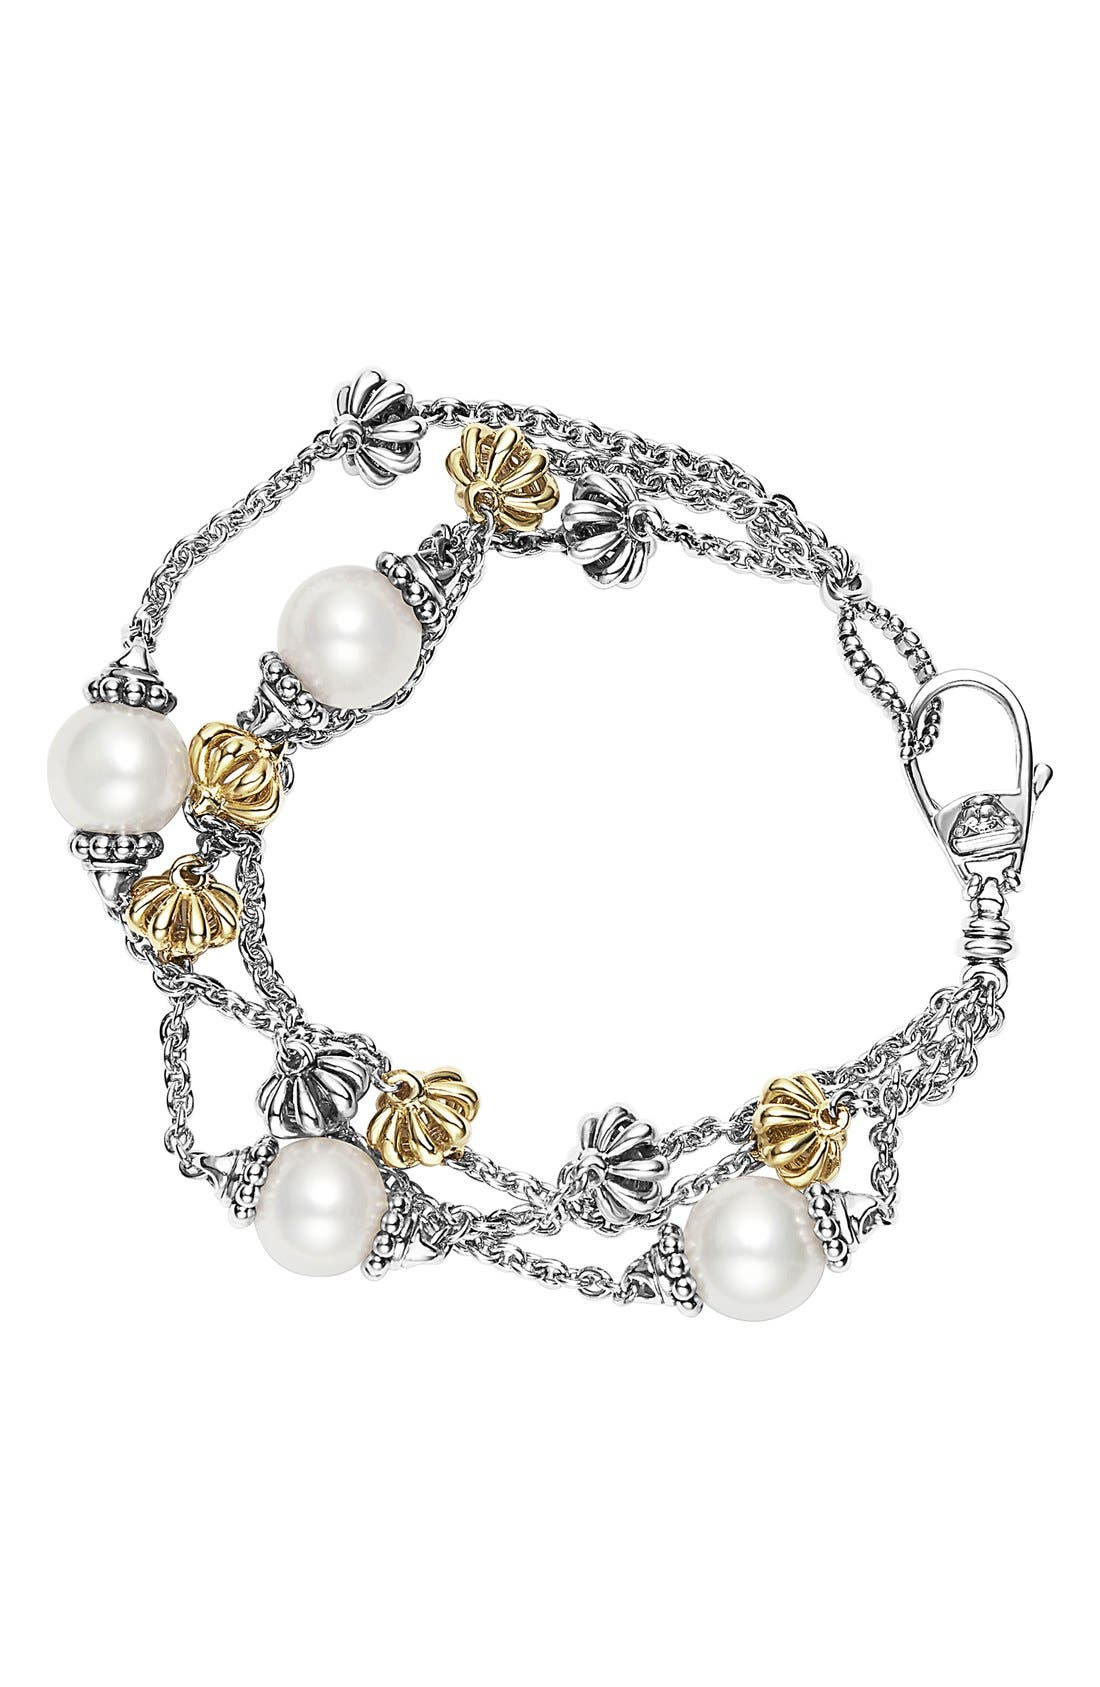 'Luna' Pearl Three-Strand Line Bracelet,                         Main,                         color, Silver/ Gold/ Pearl